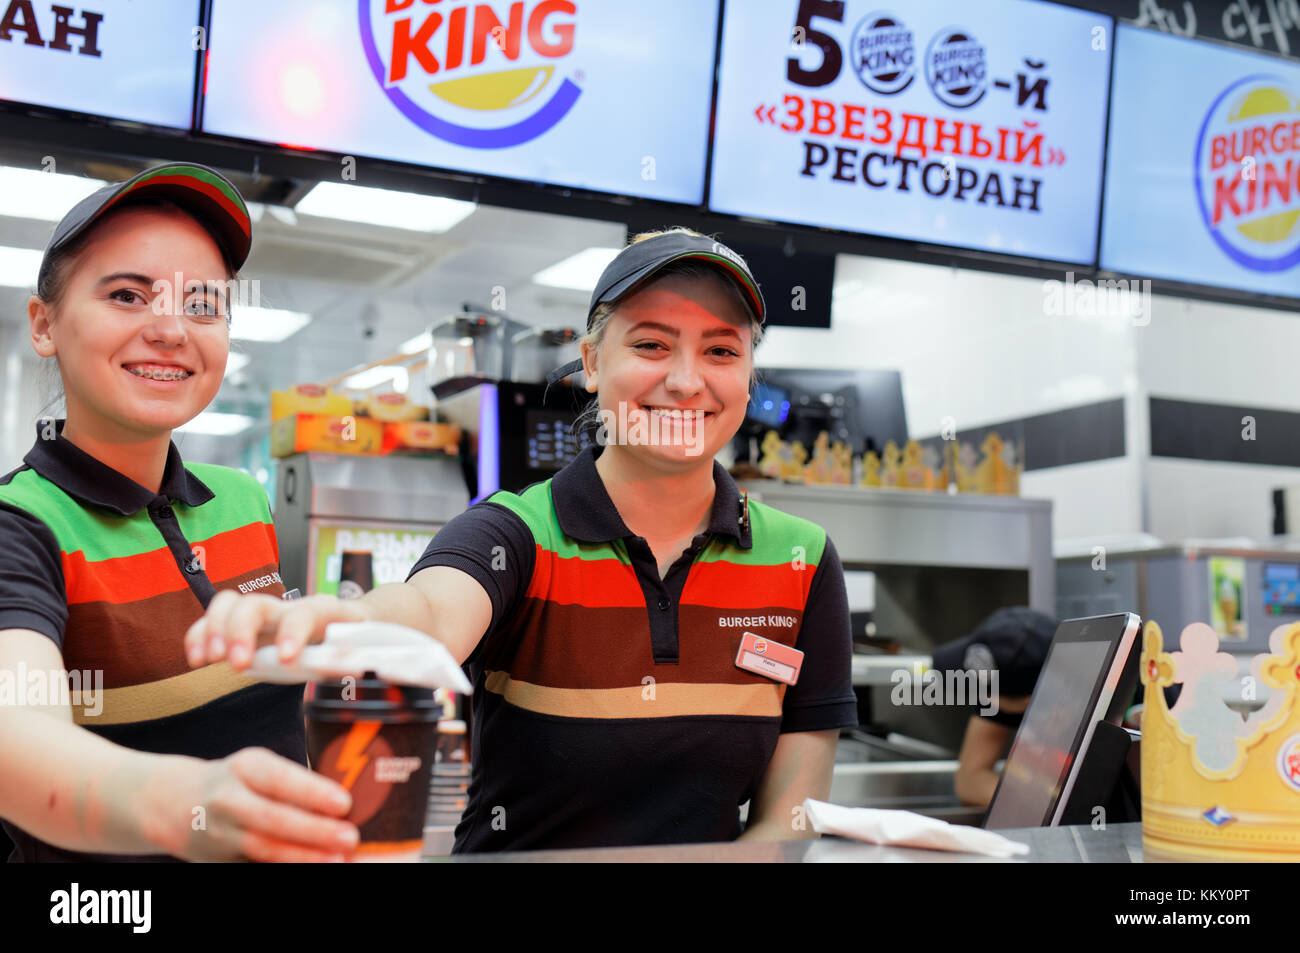 Staff of 500th Burger King restaurant in Russia in the service area in the day of opening - Stock Image